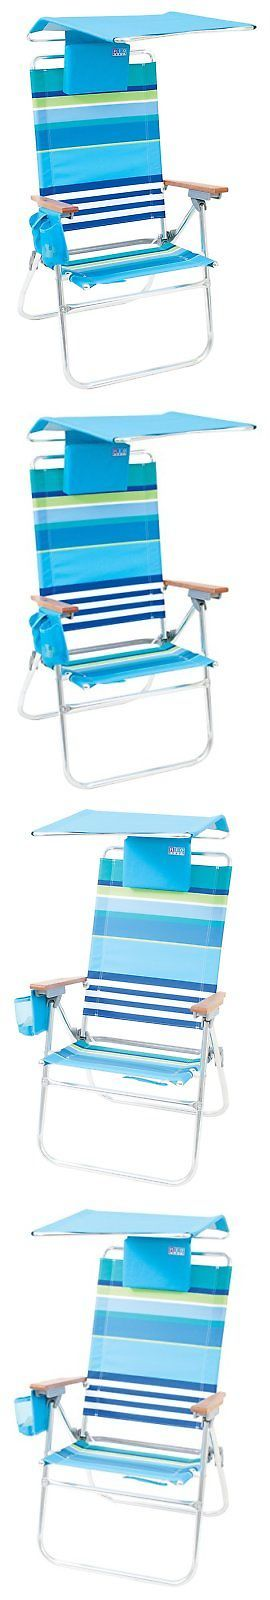 Chairs 79682: Rio Brands Hi More Than A Stripe Boy Beach Chair, Blue -> BUY IT NOW ONLY: $61.97 on eBay!